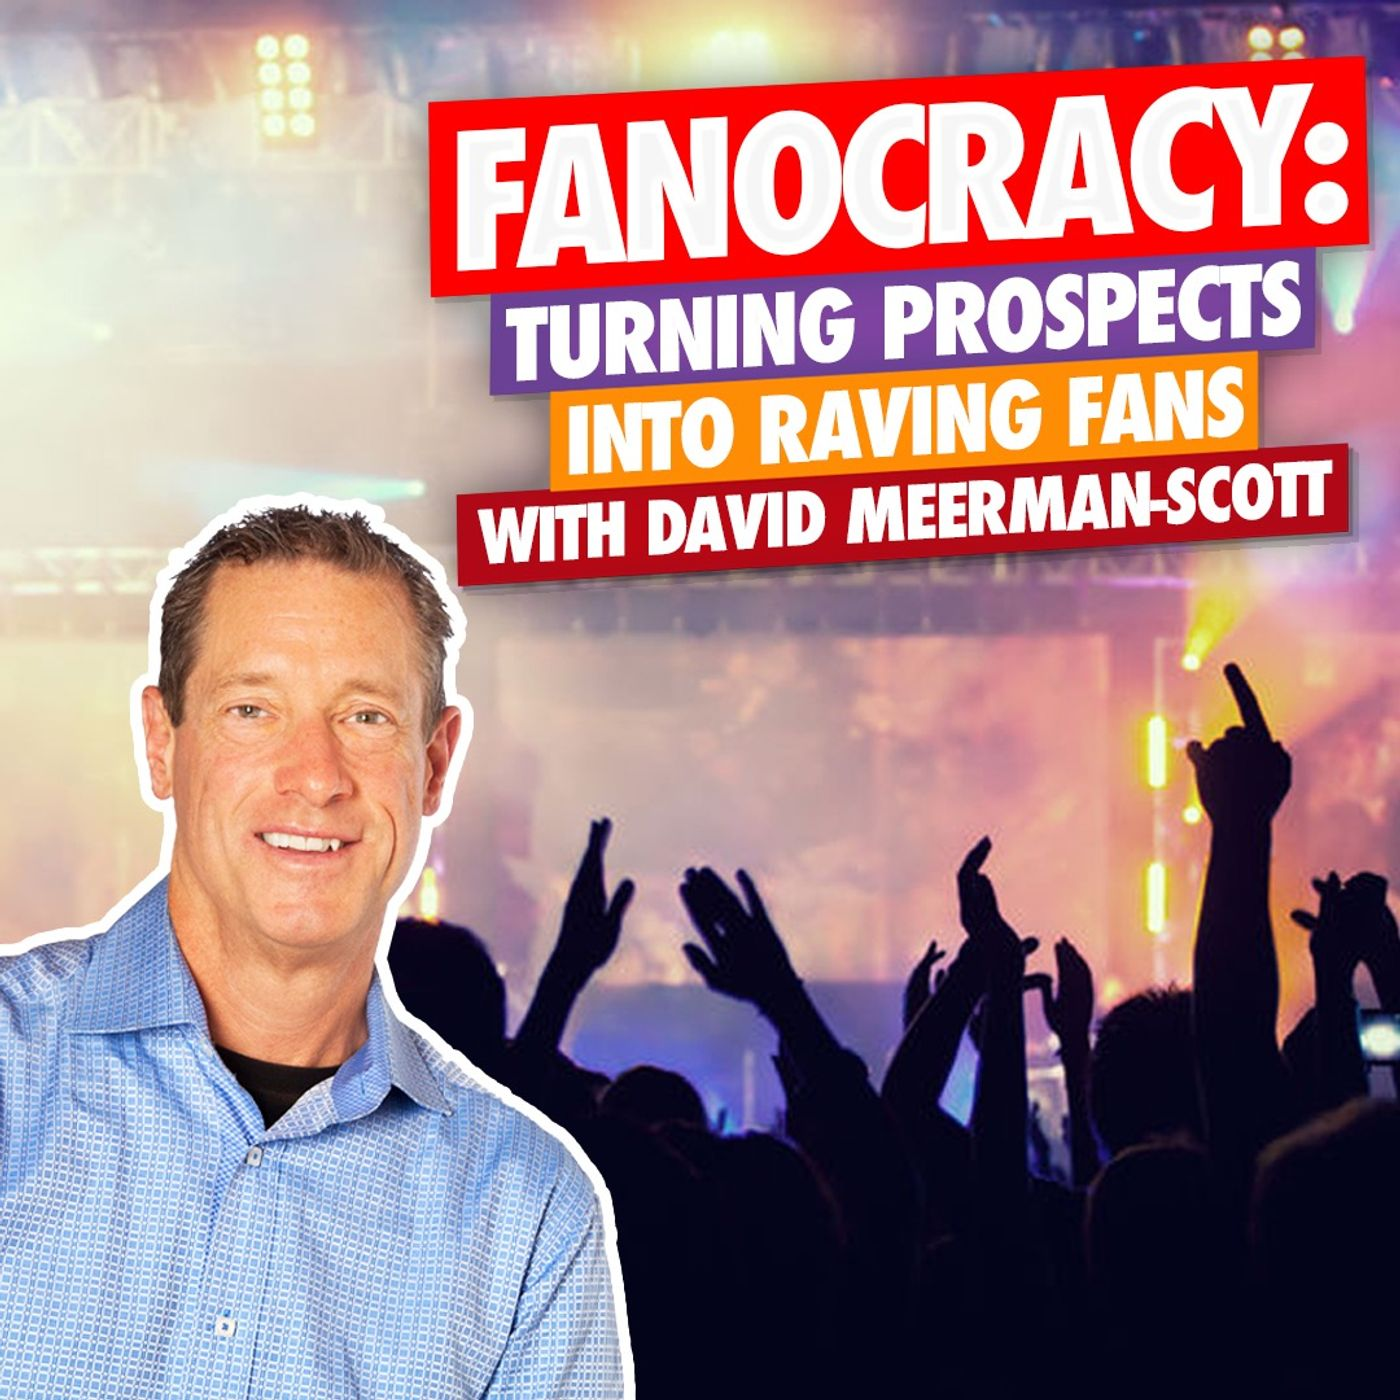 FANOCRACY with David Meerman-Scott: Turning Prospects Into Raving Fans